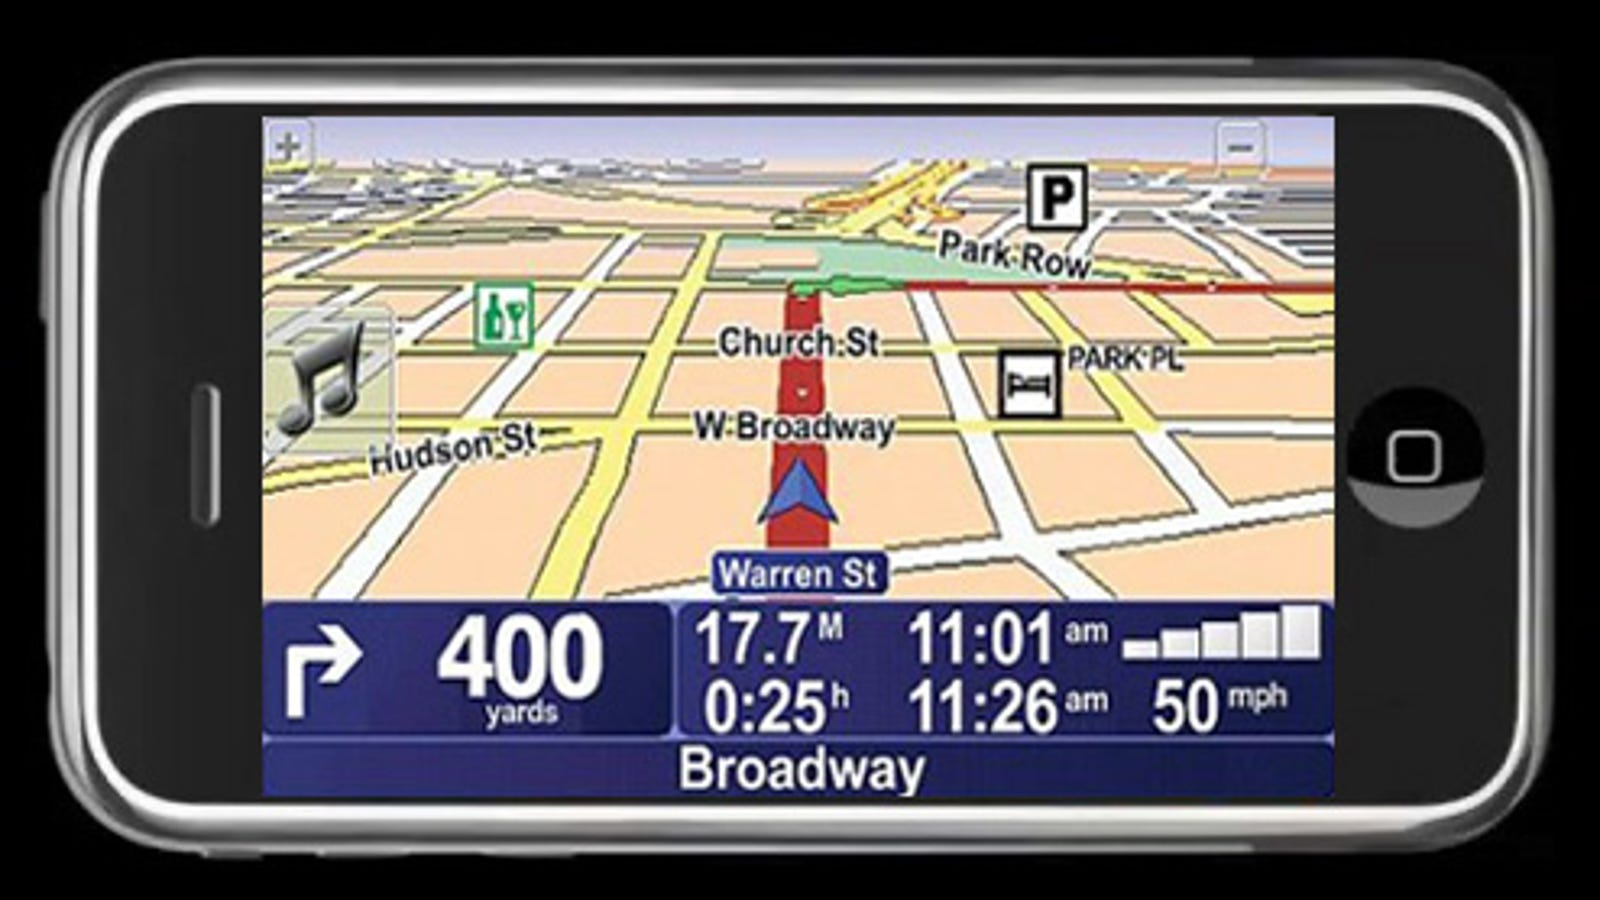 TomTom Has Navigation App Already Running On the iPhone